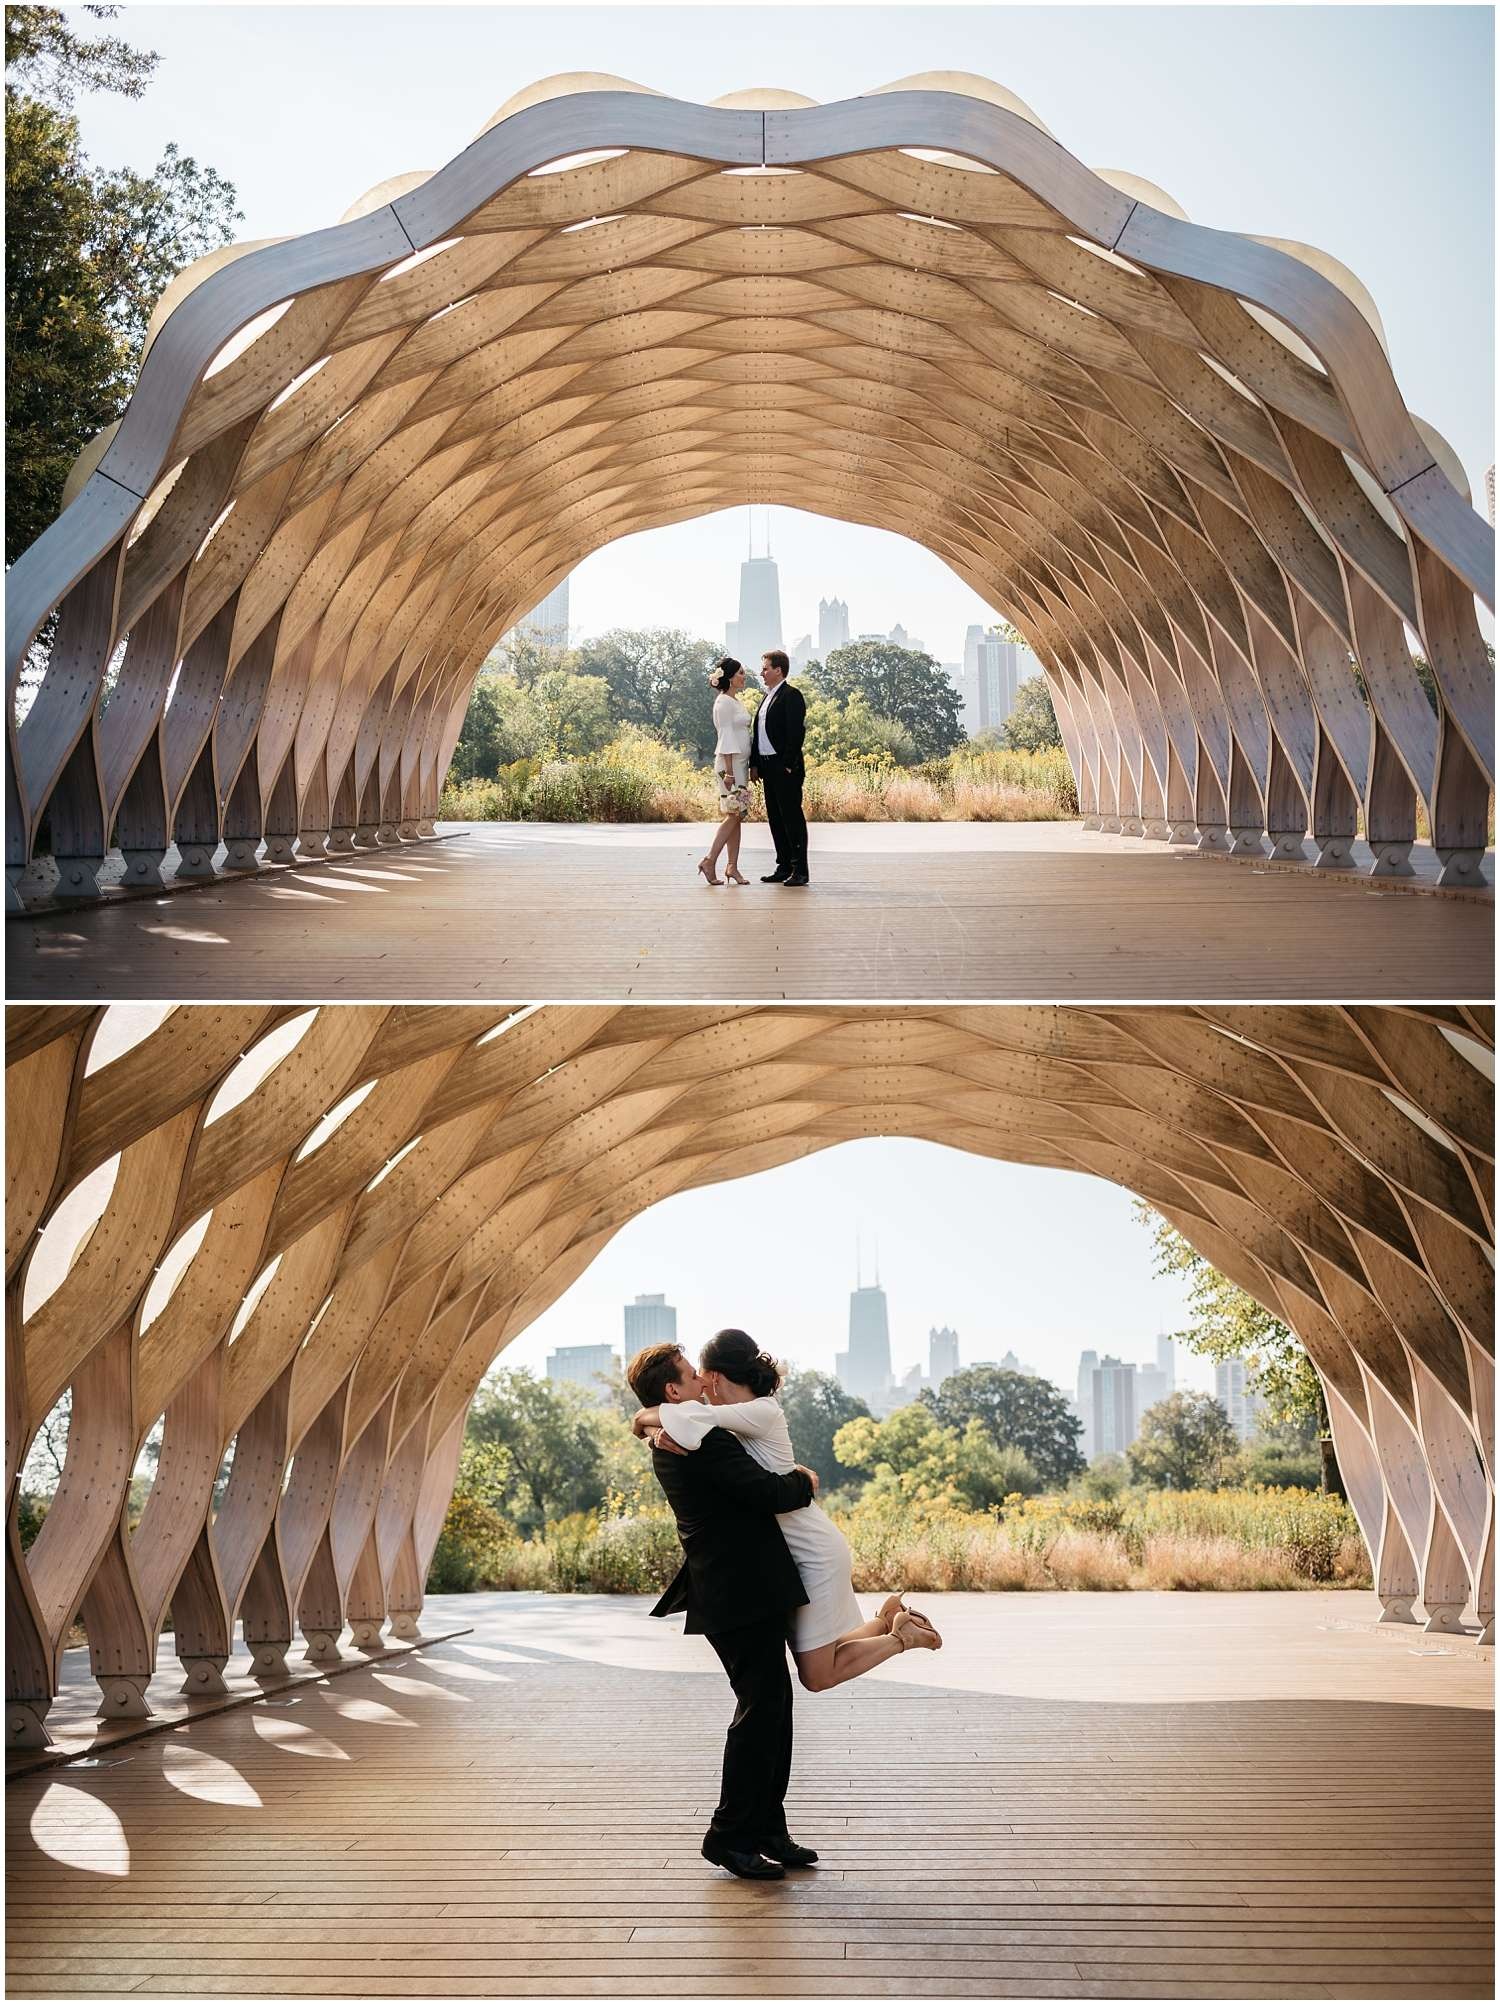 chicago, photographer, photography, couples session, couple, engagement, session, illinois, engagement session, lifestyle, documentary, photojournalistic, photojournalism, natural, candid, wisconsin, utah, michigan, colorado, chicagoland, portrait, unposed, elopement, elope, emopement photographer, chicago elopement, illinois elopement, anniversary, lincoln park, nature boardwalk